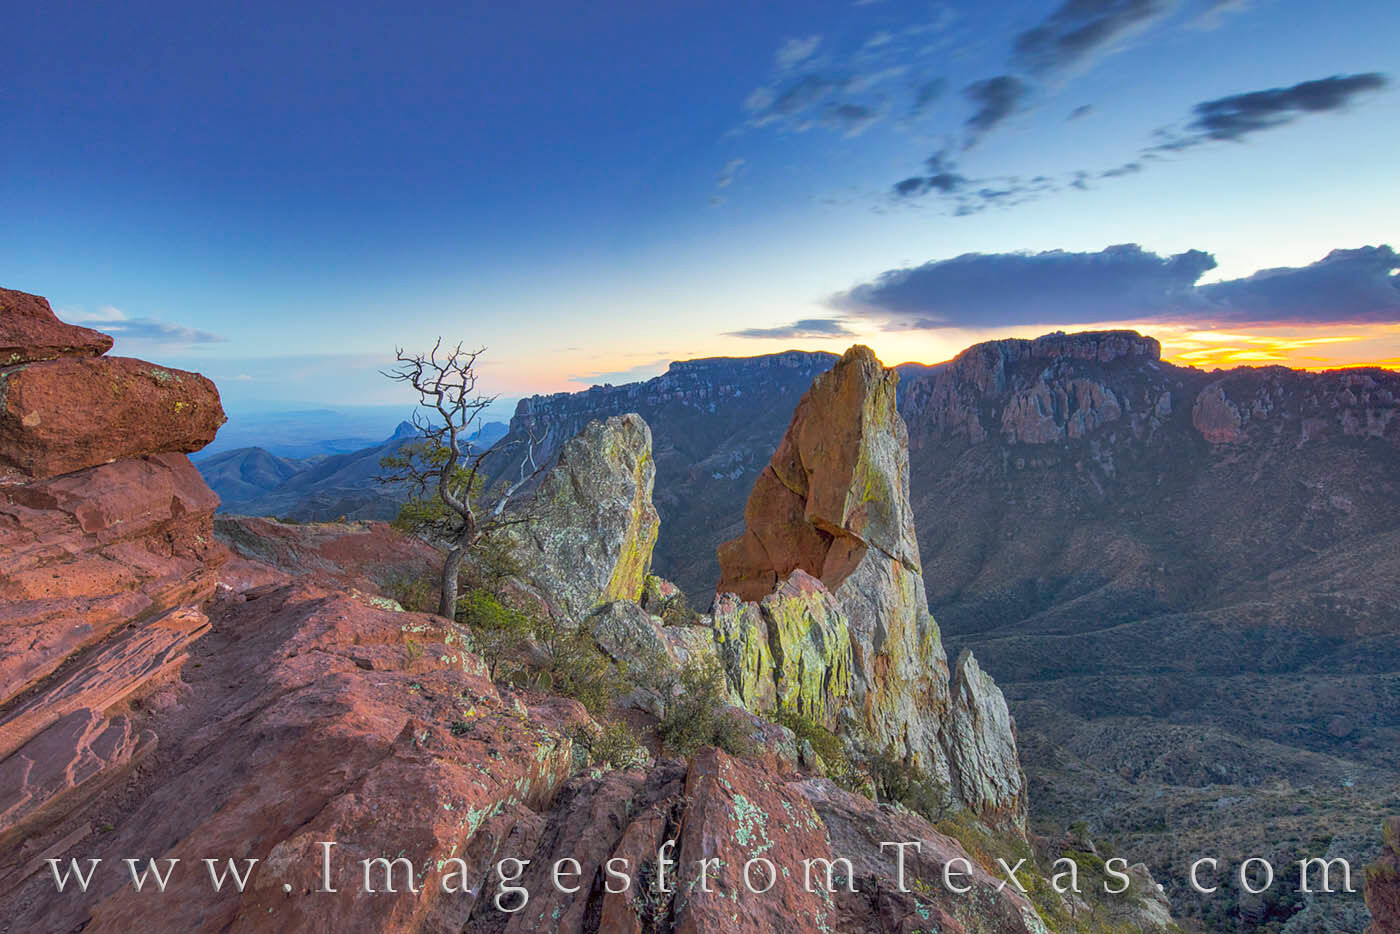 big bend national park, big bend, chisos mountains, lost mine trail, texas landscapes, west texas, texas national parks, texas sunsets, sunset, texas, photo